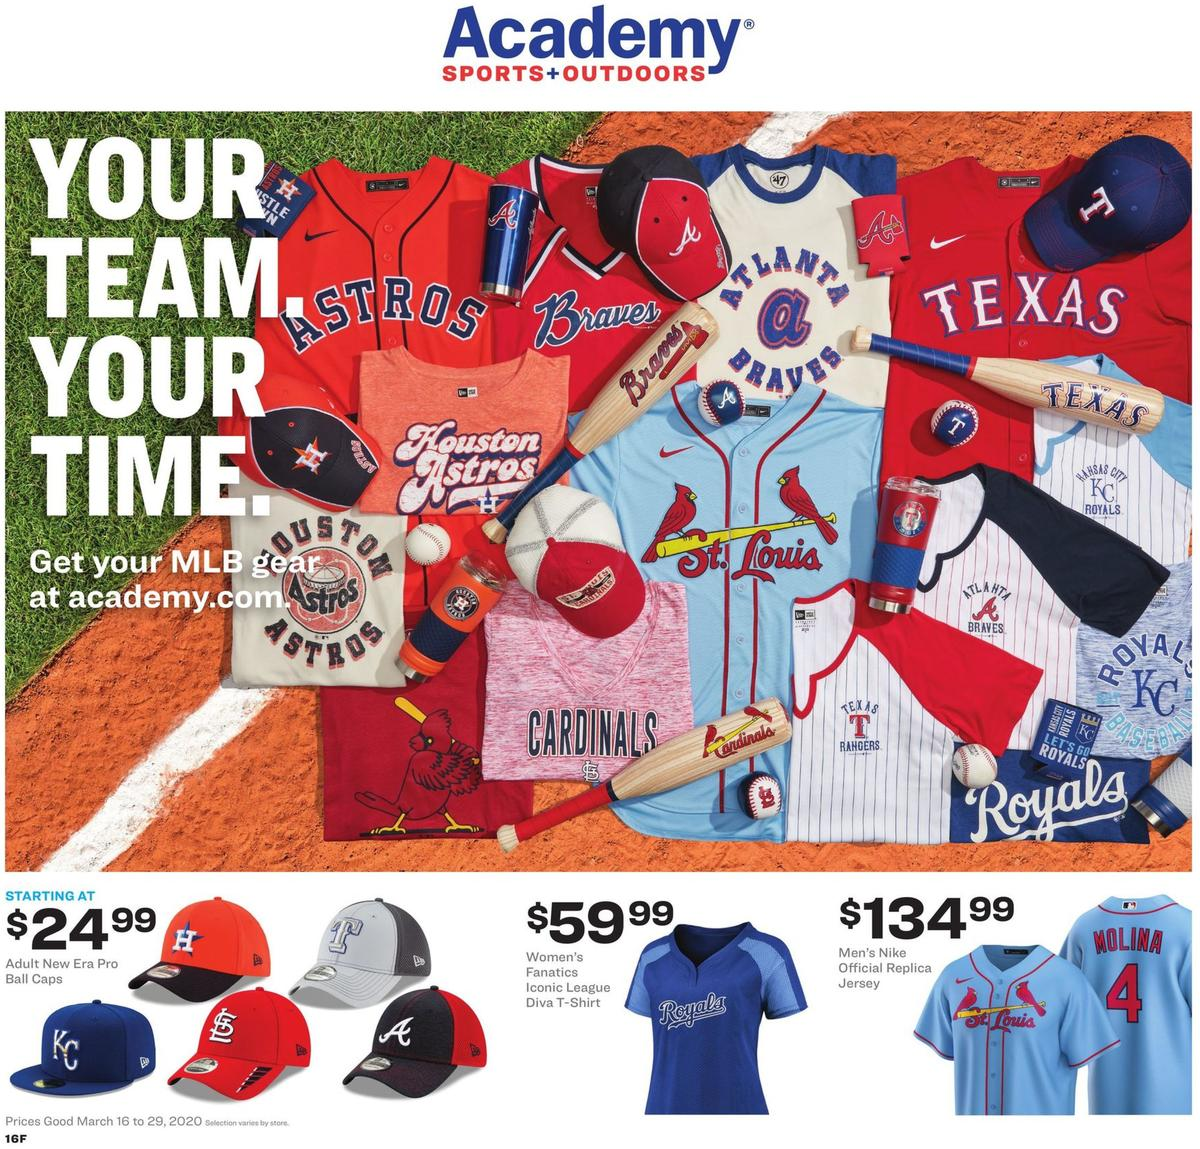 Academy Sports + Outdoors Weekly Ad from March 16